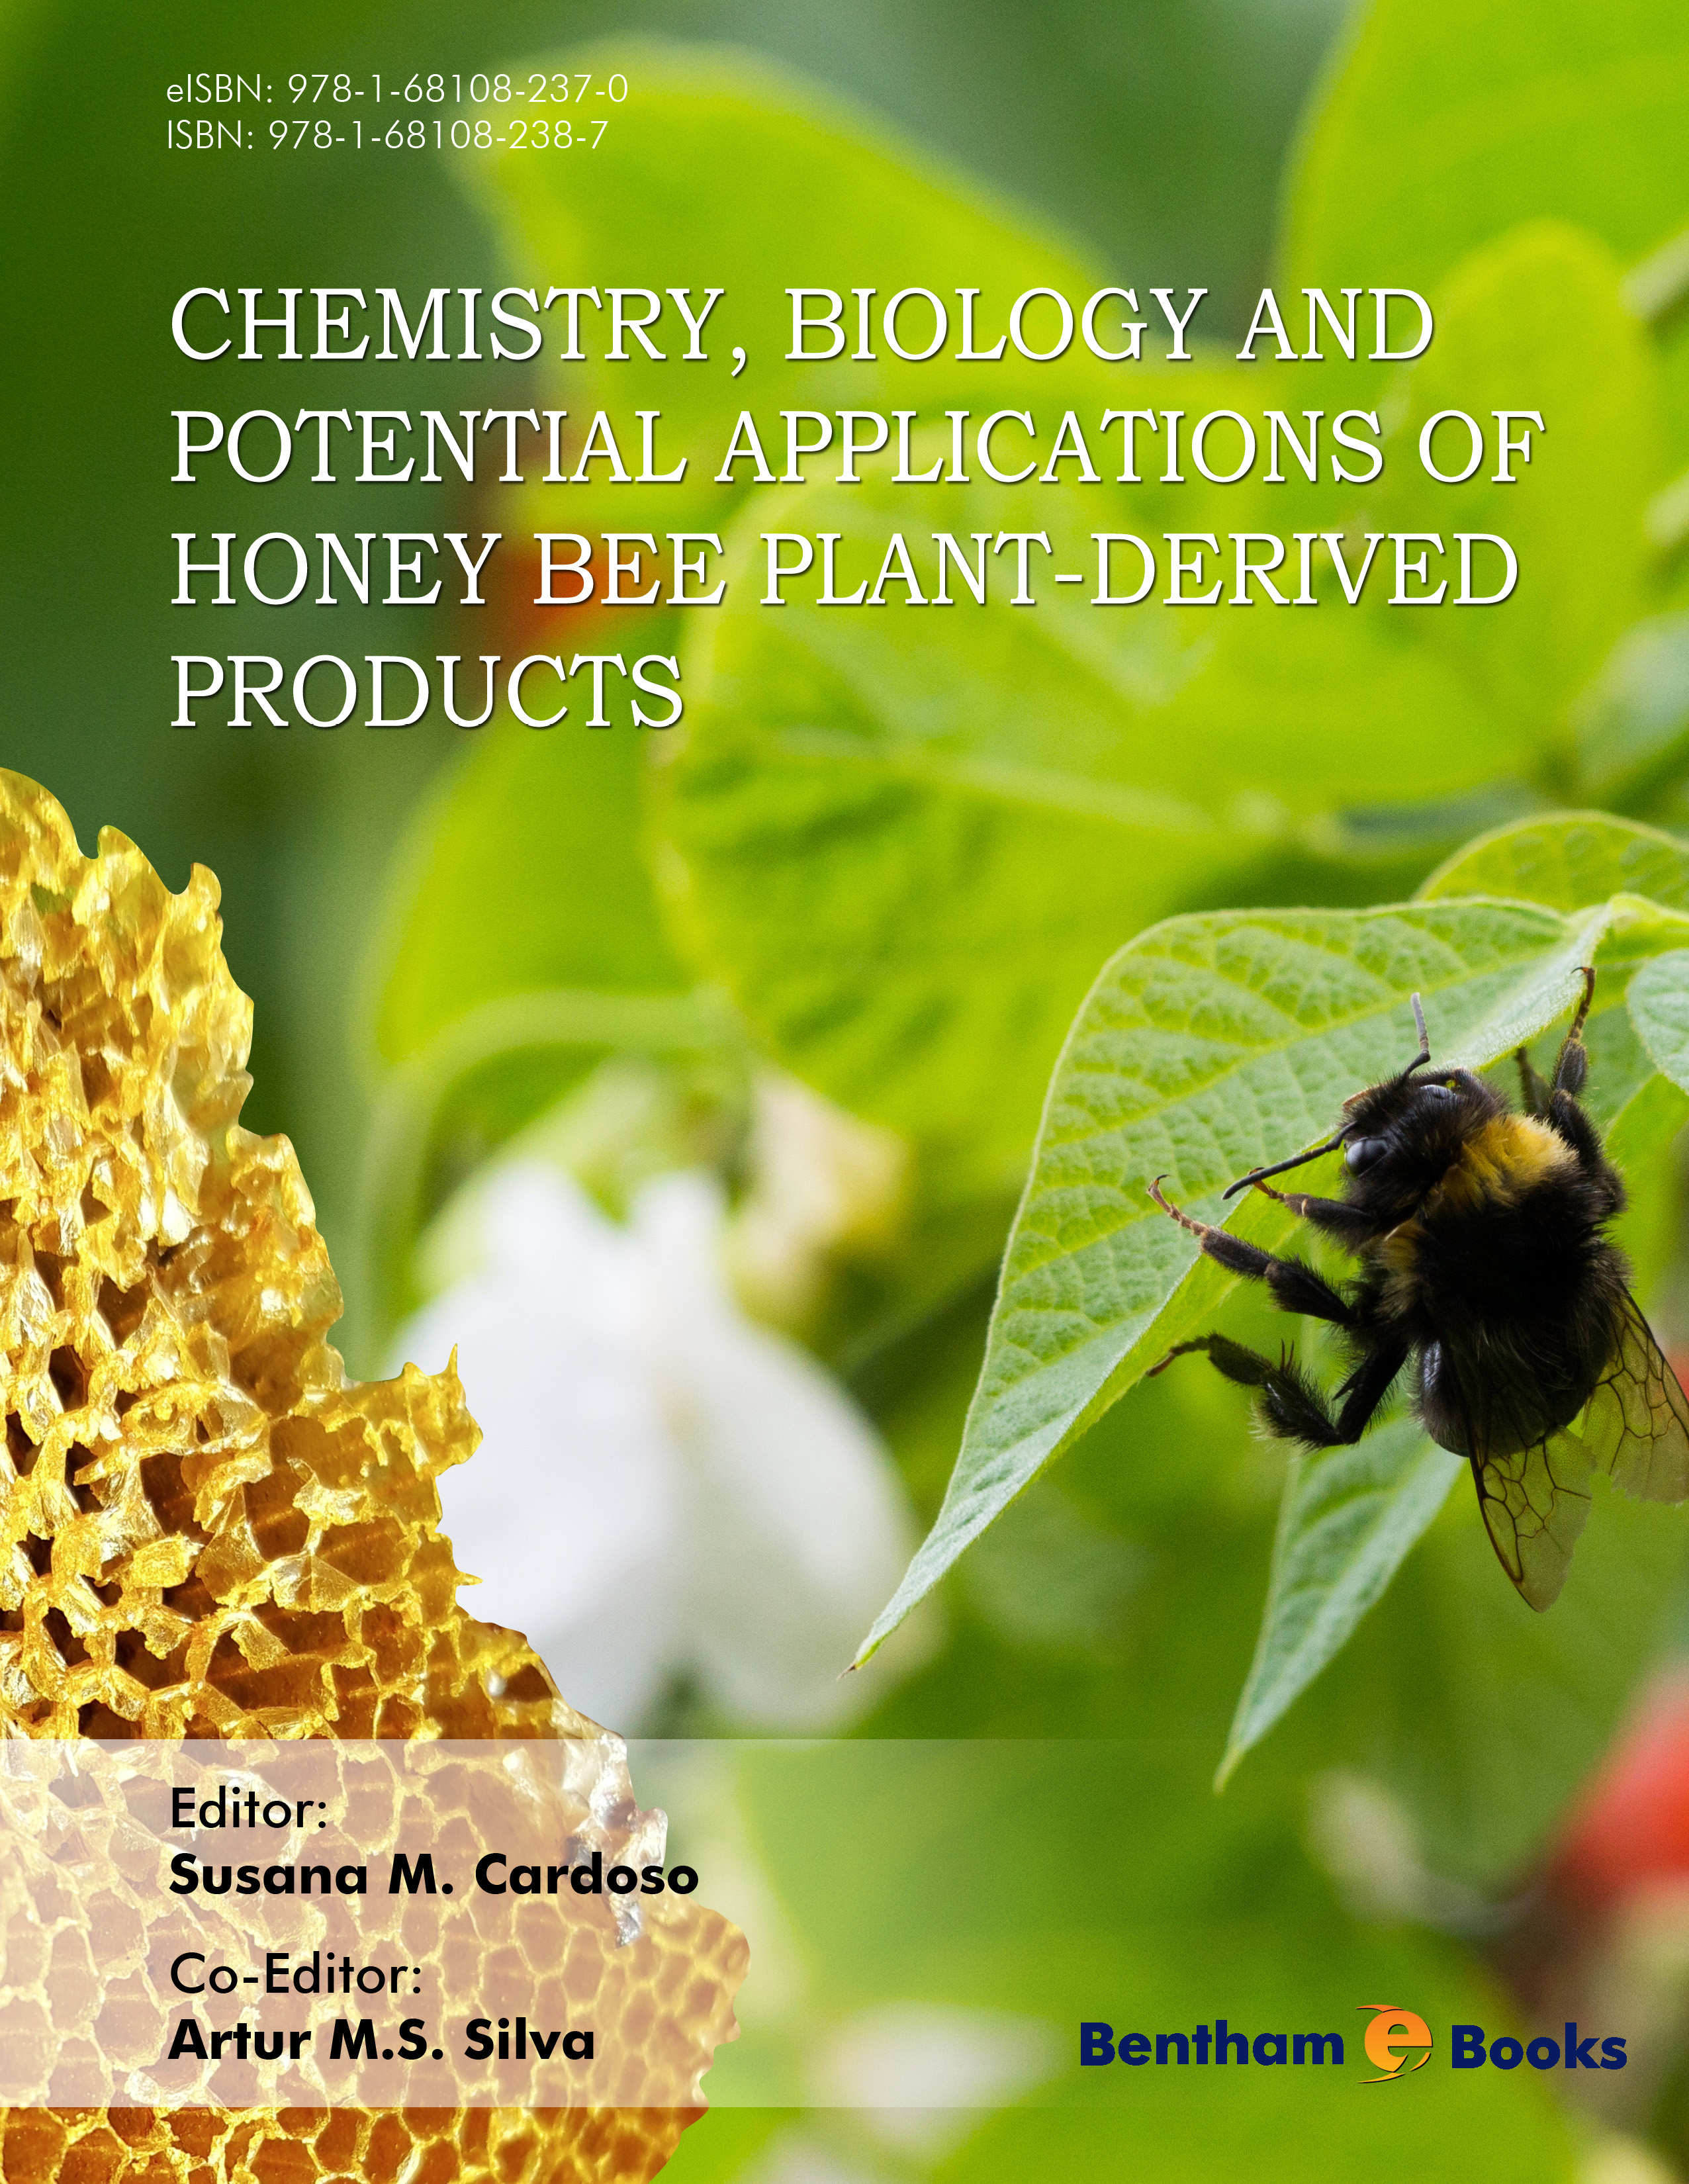 Chemistry, Biology and Potential Applications of Honeybee Plant-Derived Products